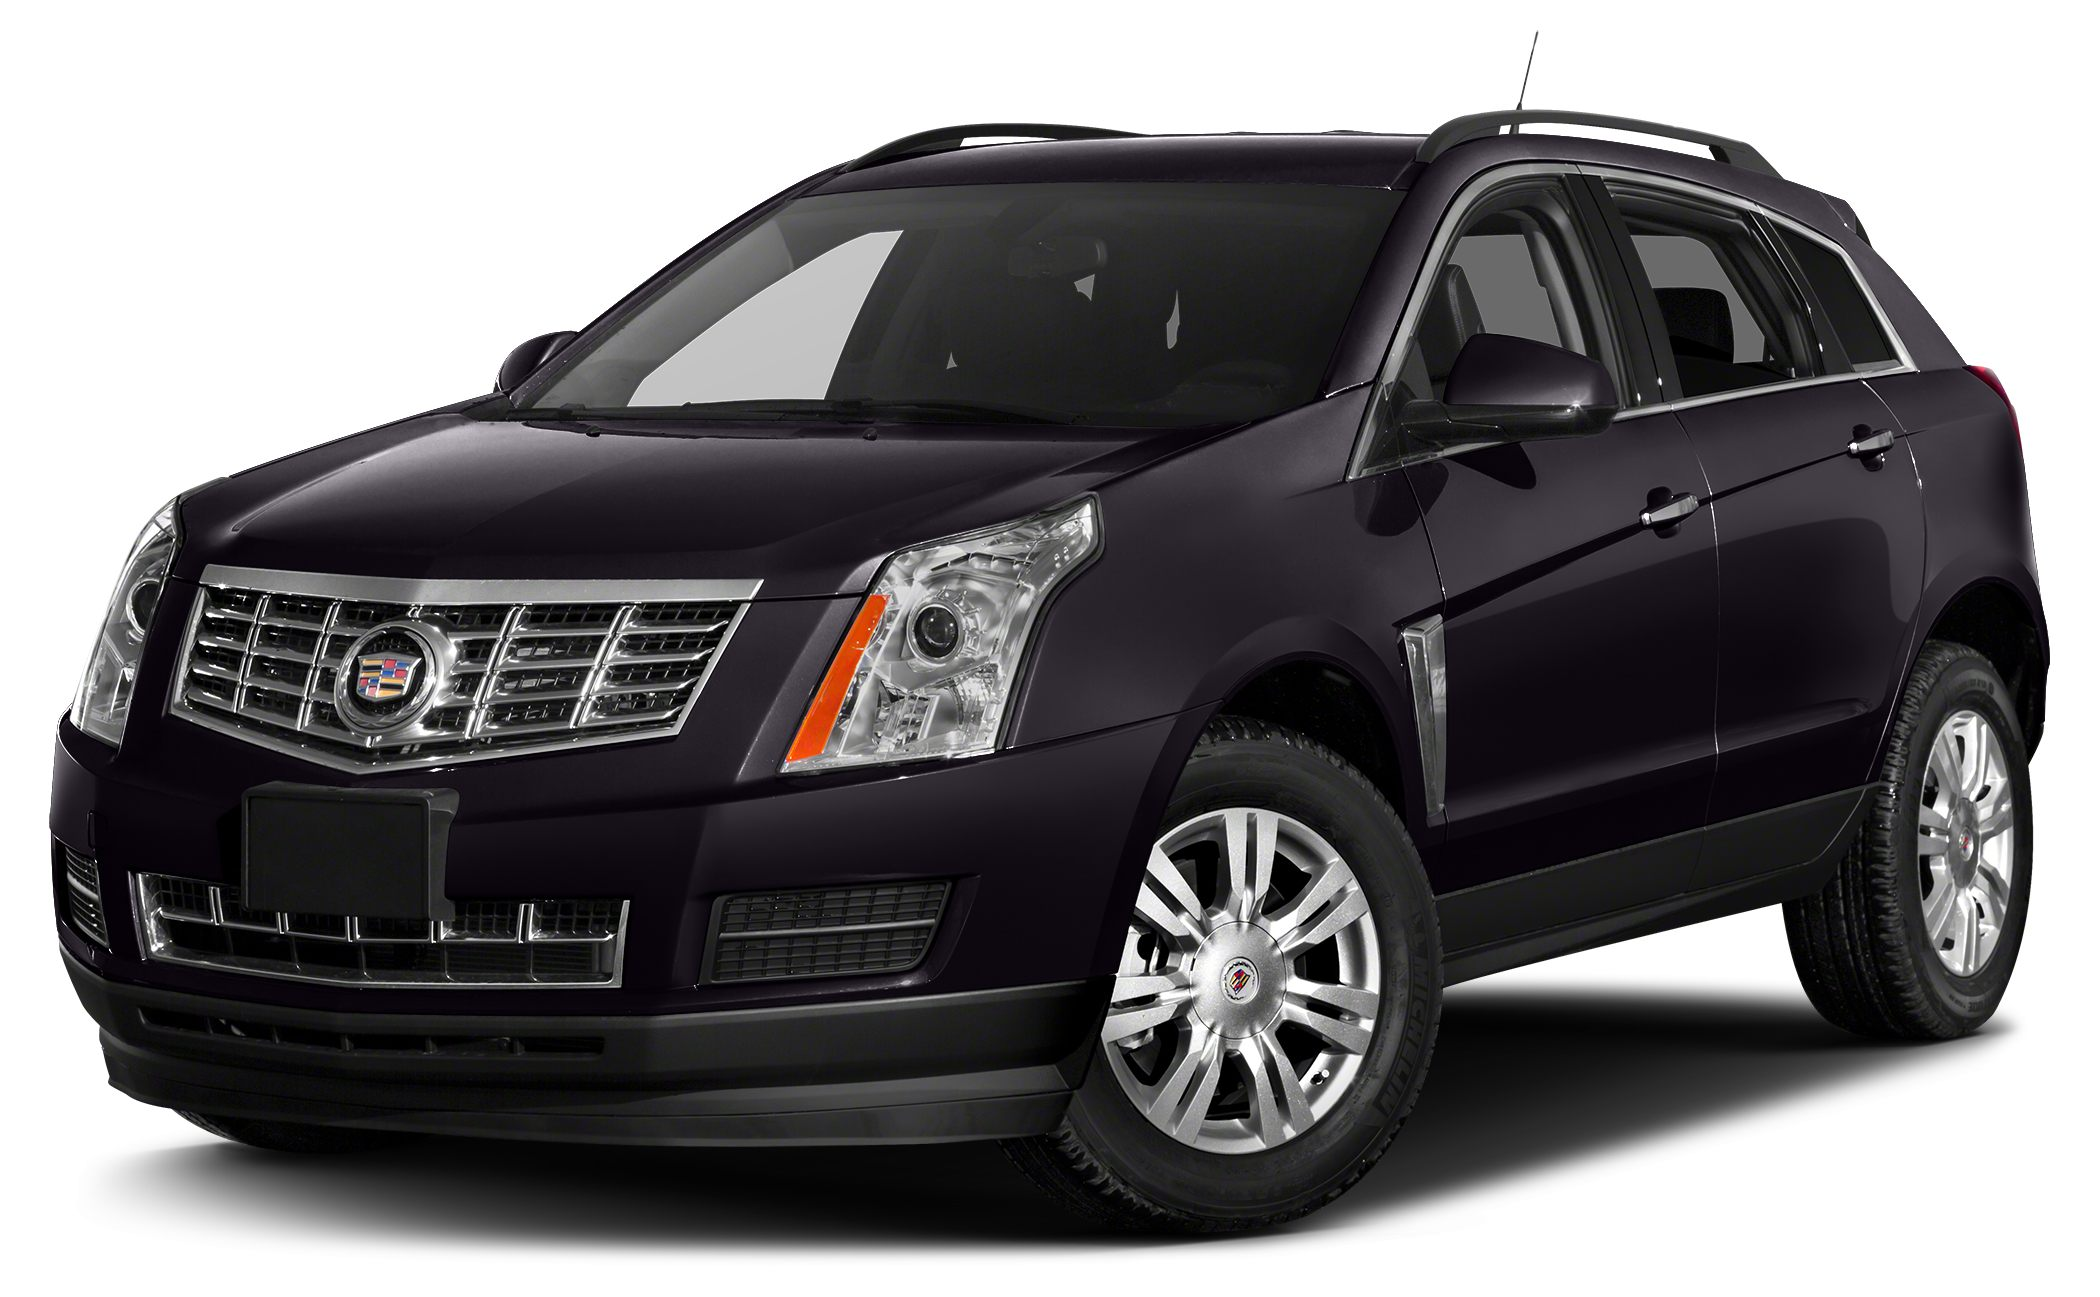 2015 Cadillac SRX Luxury Collection Take a trip in the land of milk and honey Second to none one